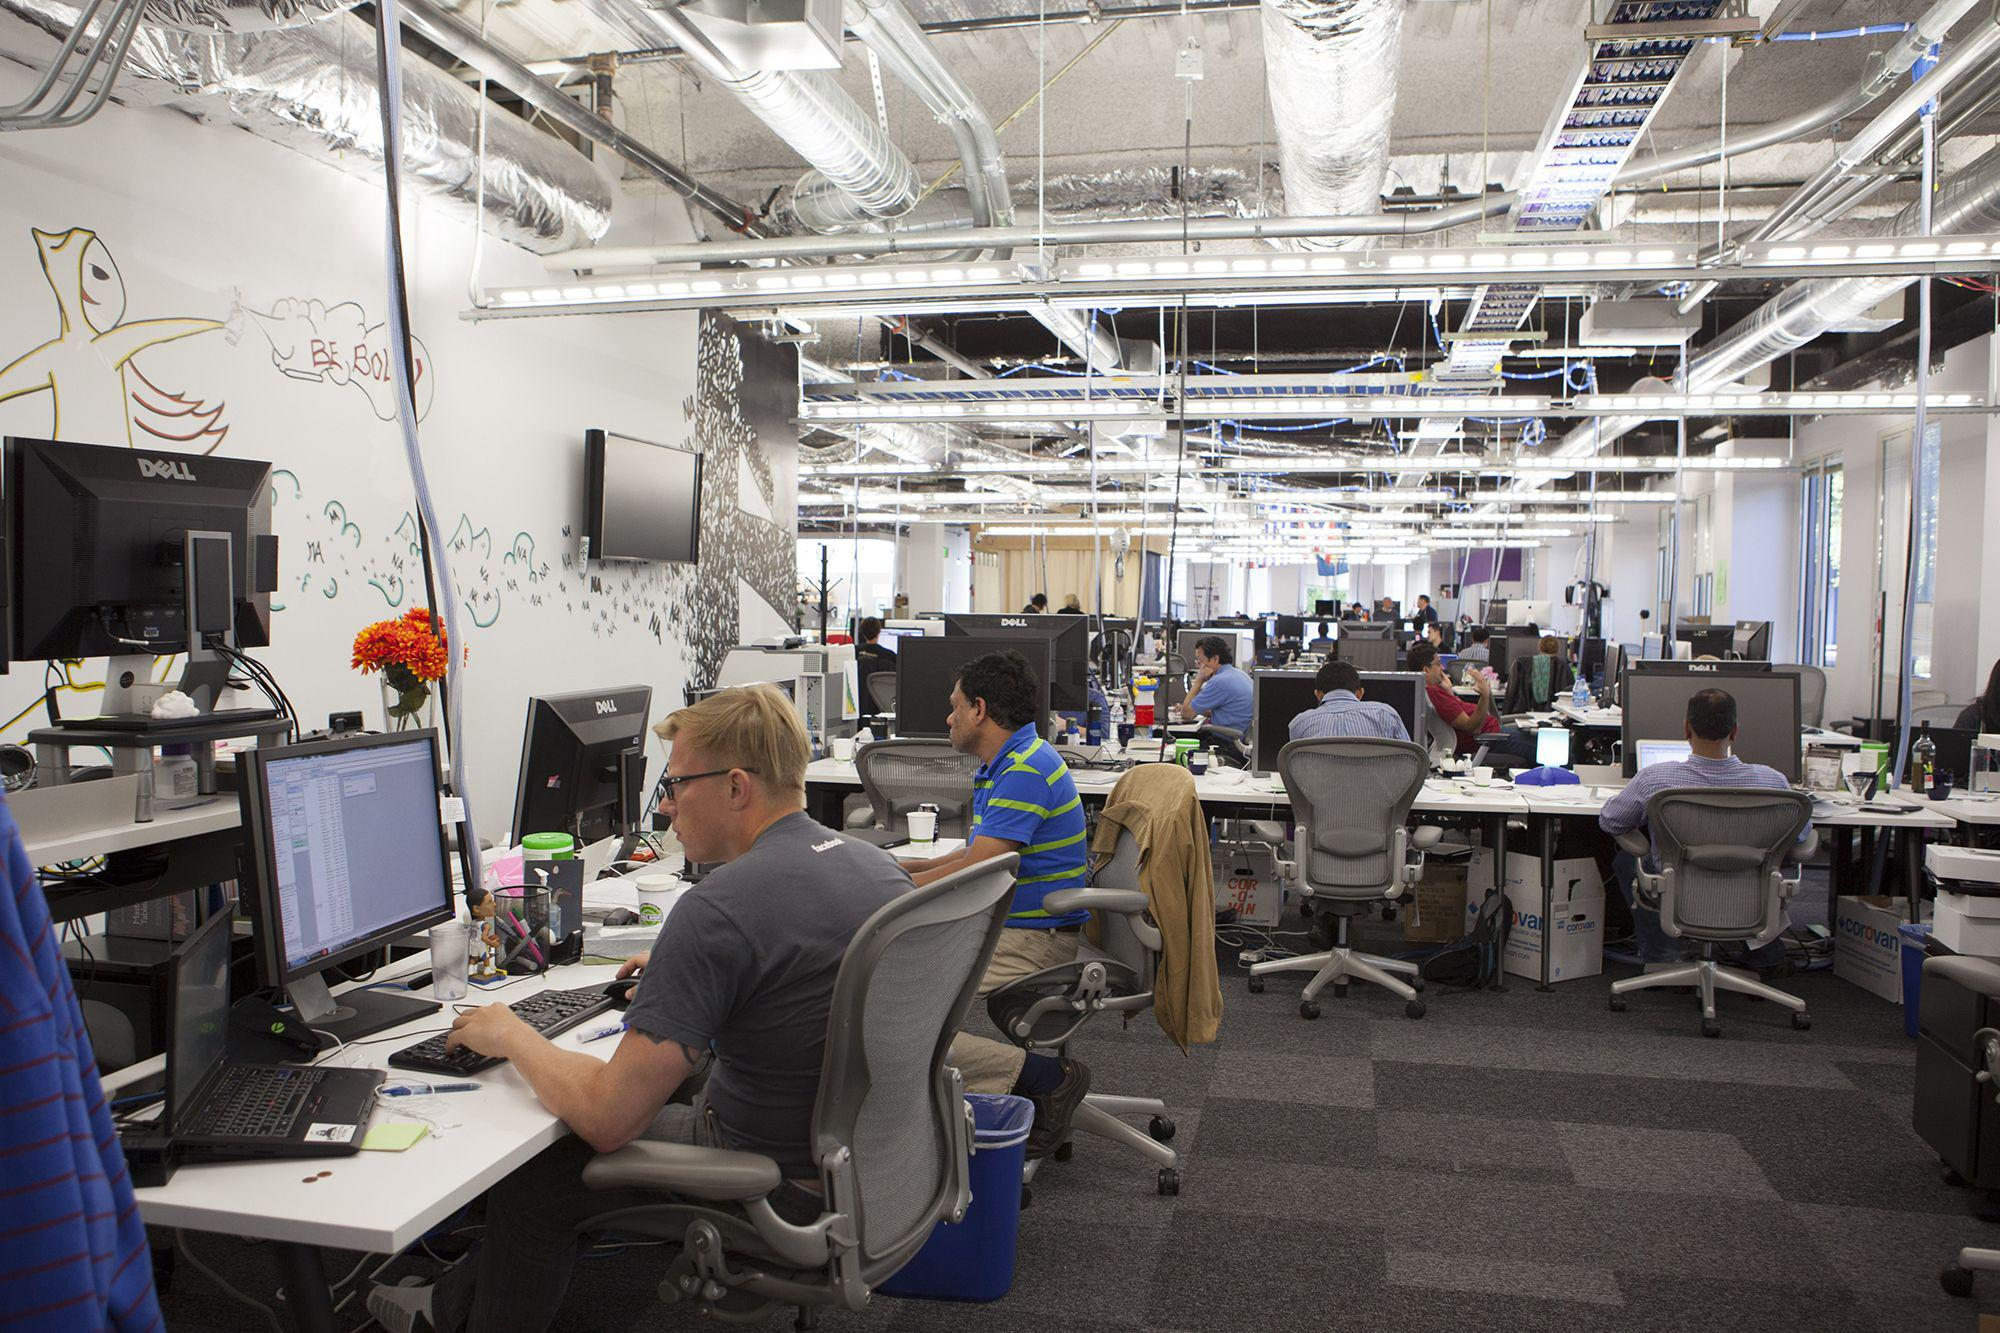 Scenes of daily work and life at Facebook , Inc. USA Headquarters in Menlo Park, California. View of employees at work in a typical unfinished looking workspace.